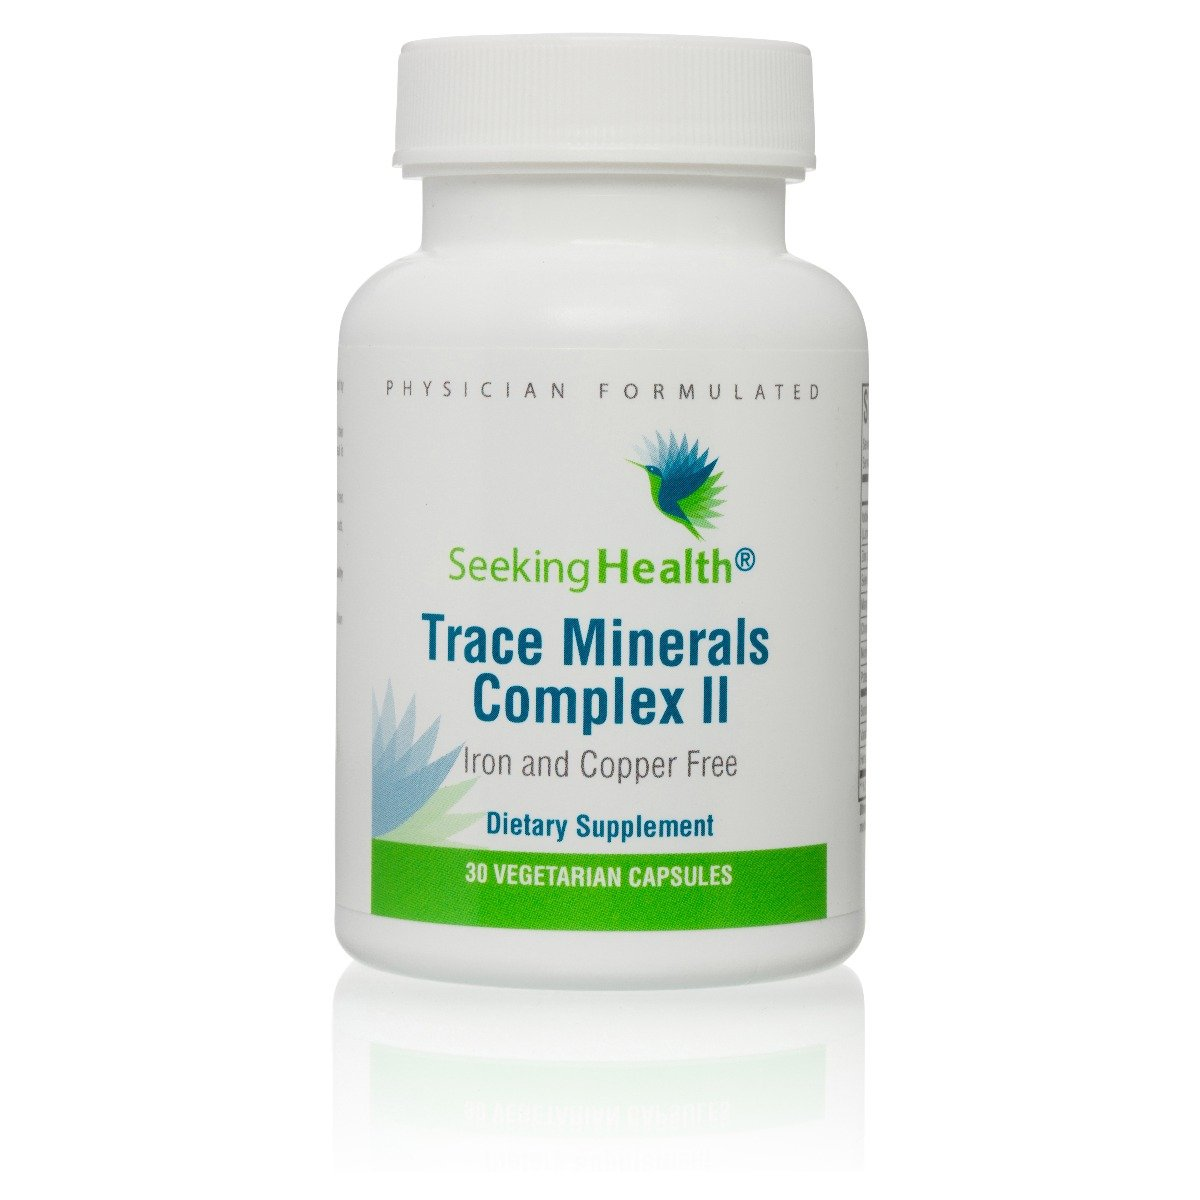 Trace Minerals Complex II Iron and Copper Free | 30 Capsules